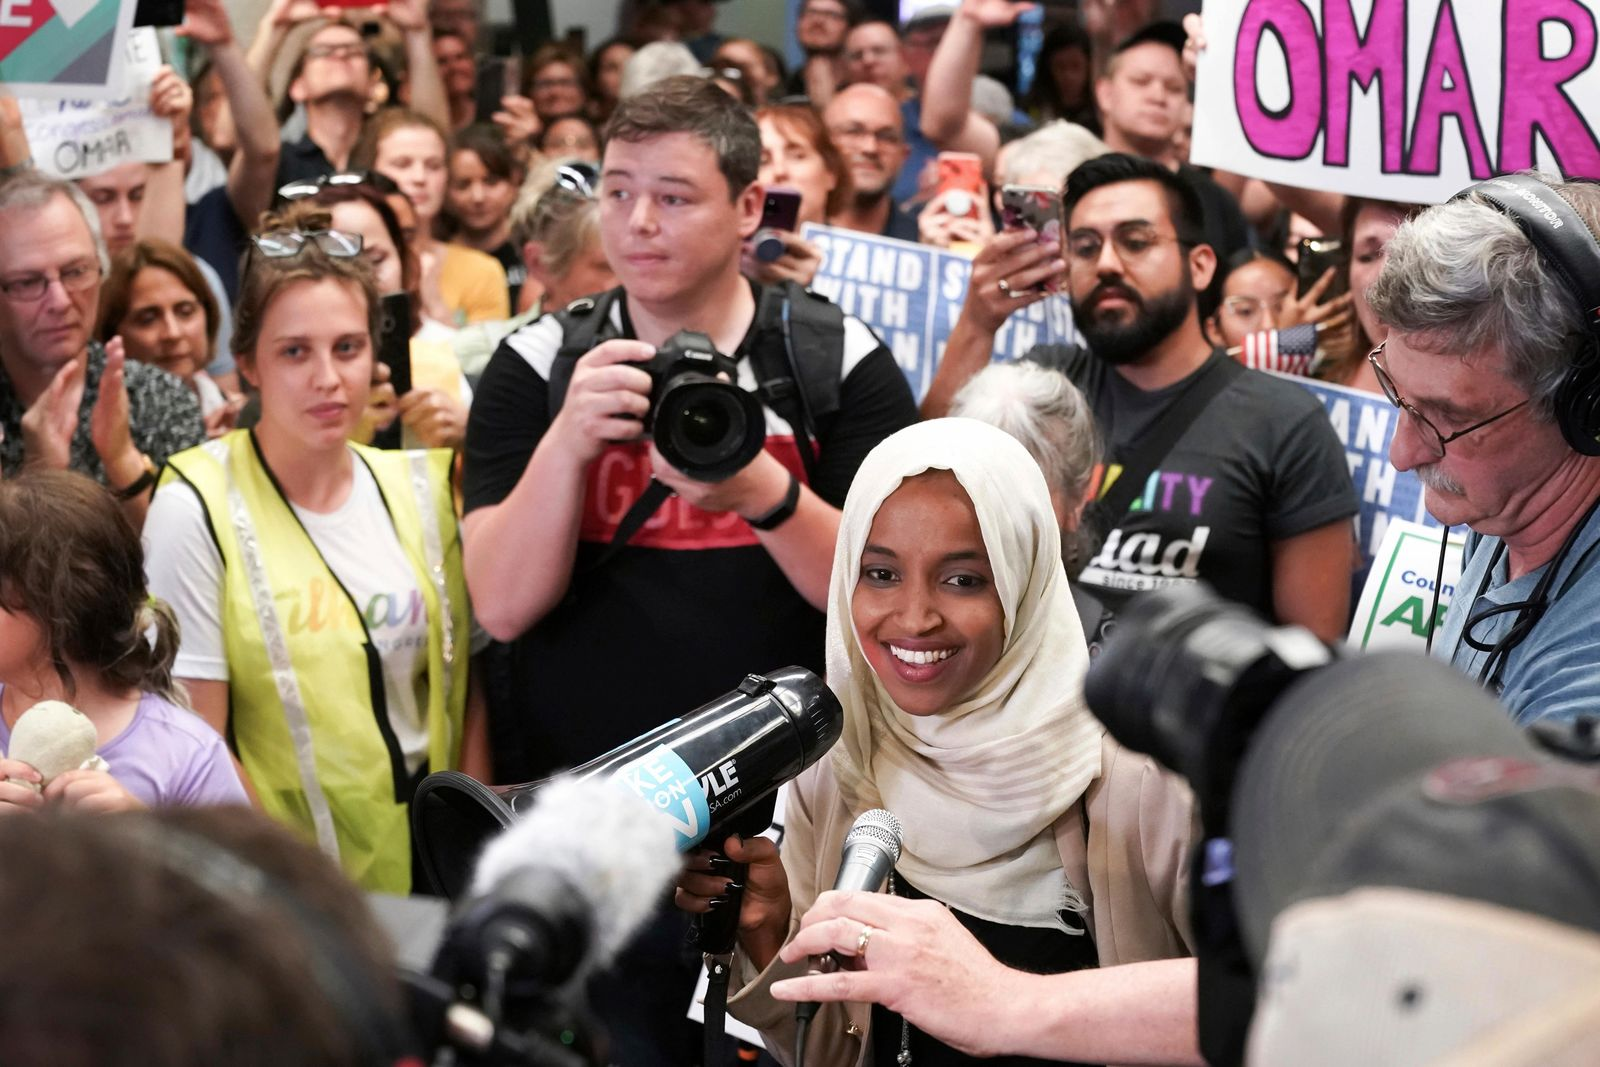 U.S. Rep. Ilhan Omar speaks to supporters as she arrives at Minneapolis–Saint Paul International Airport, Thursday, July 18, 2019, in Minnesota. (Glen Stubbe/Star Tribune via AP)